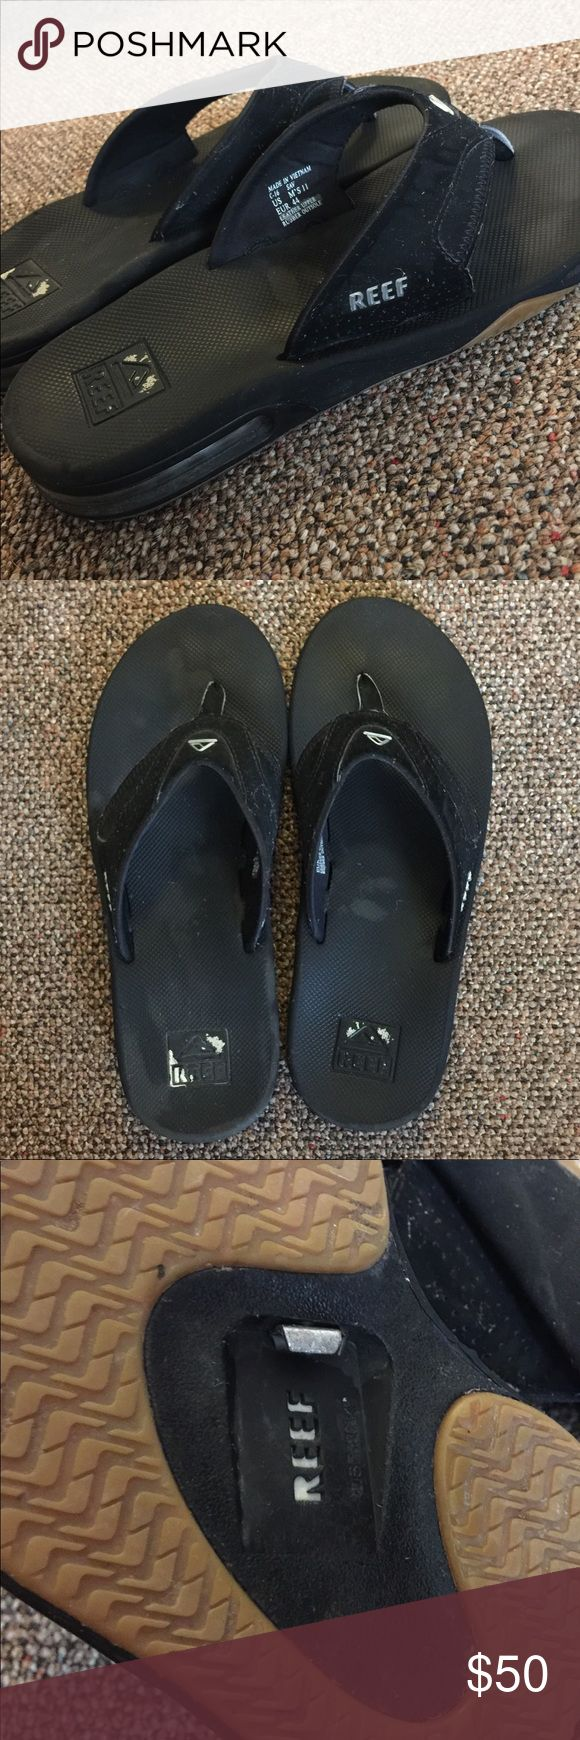 Men's Reef Flip Flops Bought for my husband at the beach. He only wore them the week we were there, they ended up just being too big for him. The silver on the heels has worn off. But everything else about them is perfect. I just wiped them down with a cloth to clean them off. The straps have a velvety feel to them. Reef Shoes Sandals & Flip-Flops